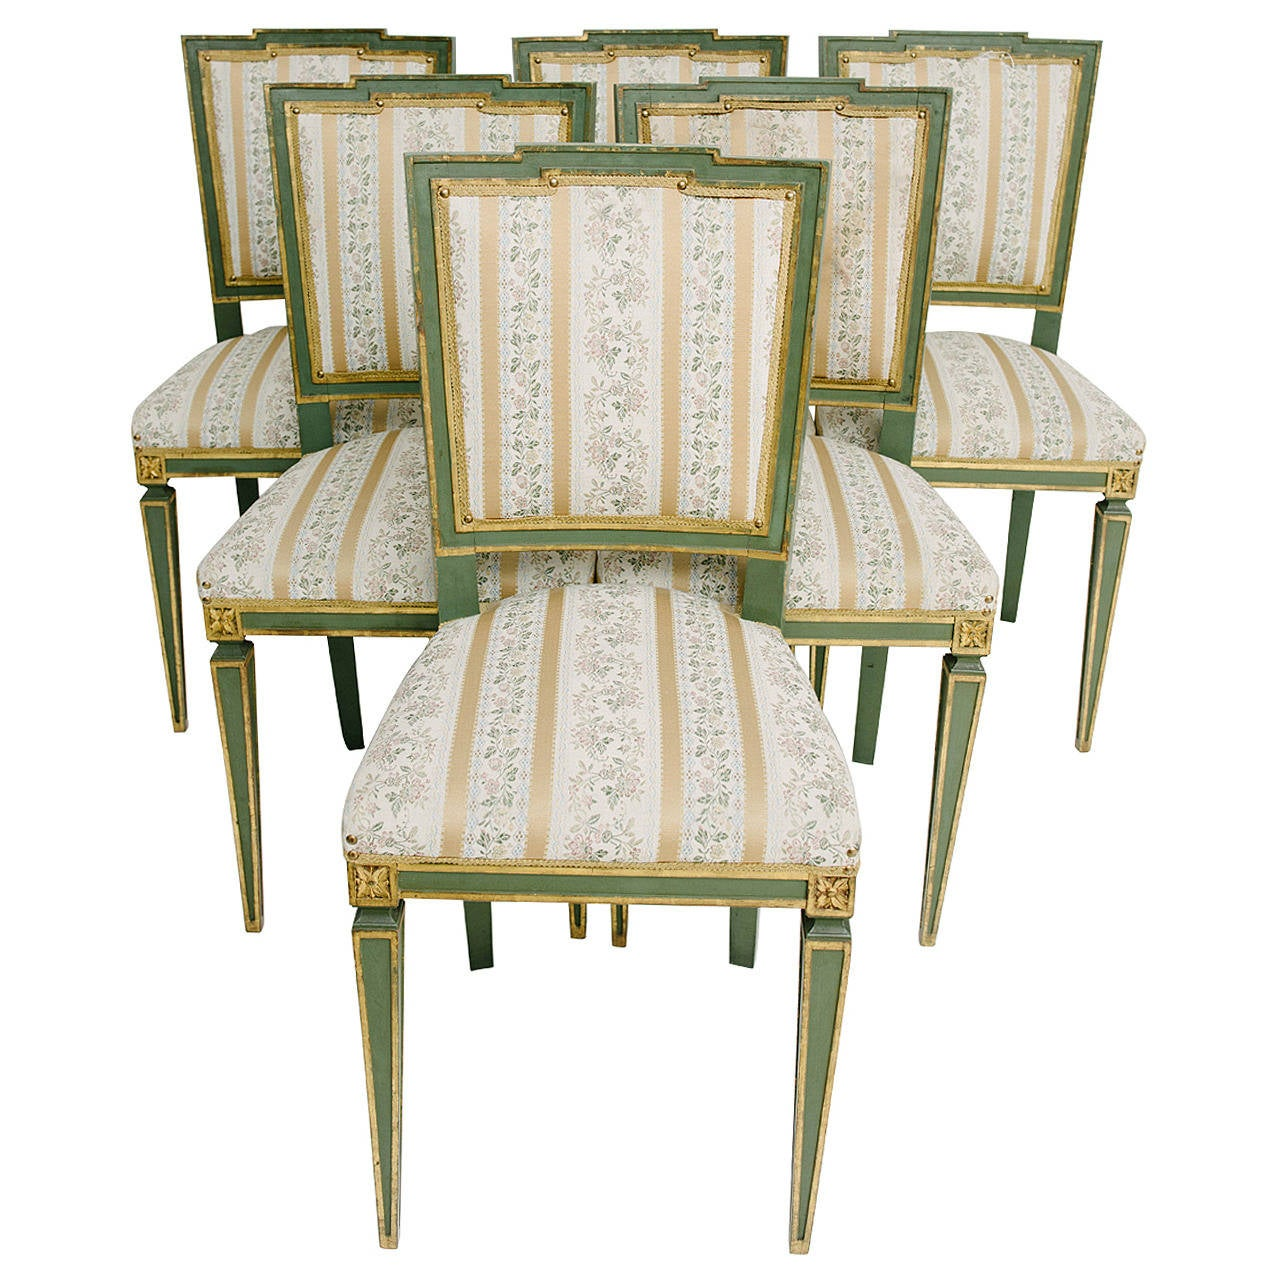 louis dining chairs desk chair at walmart painted xvi style italian 1stdibs